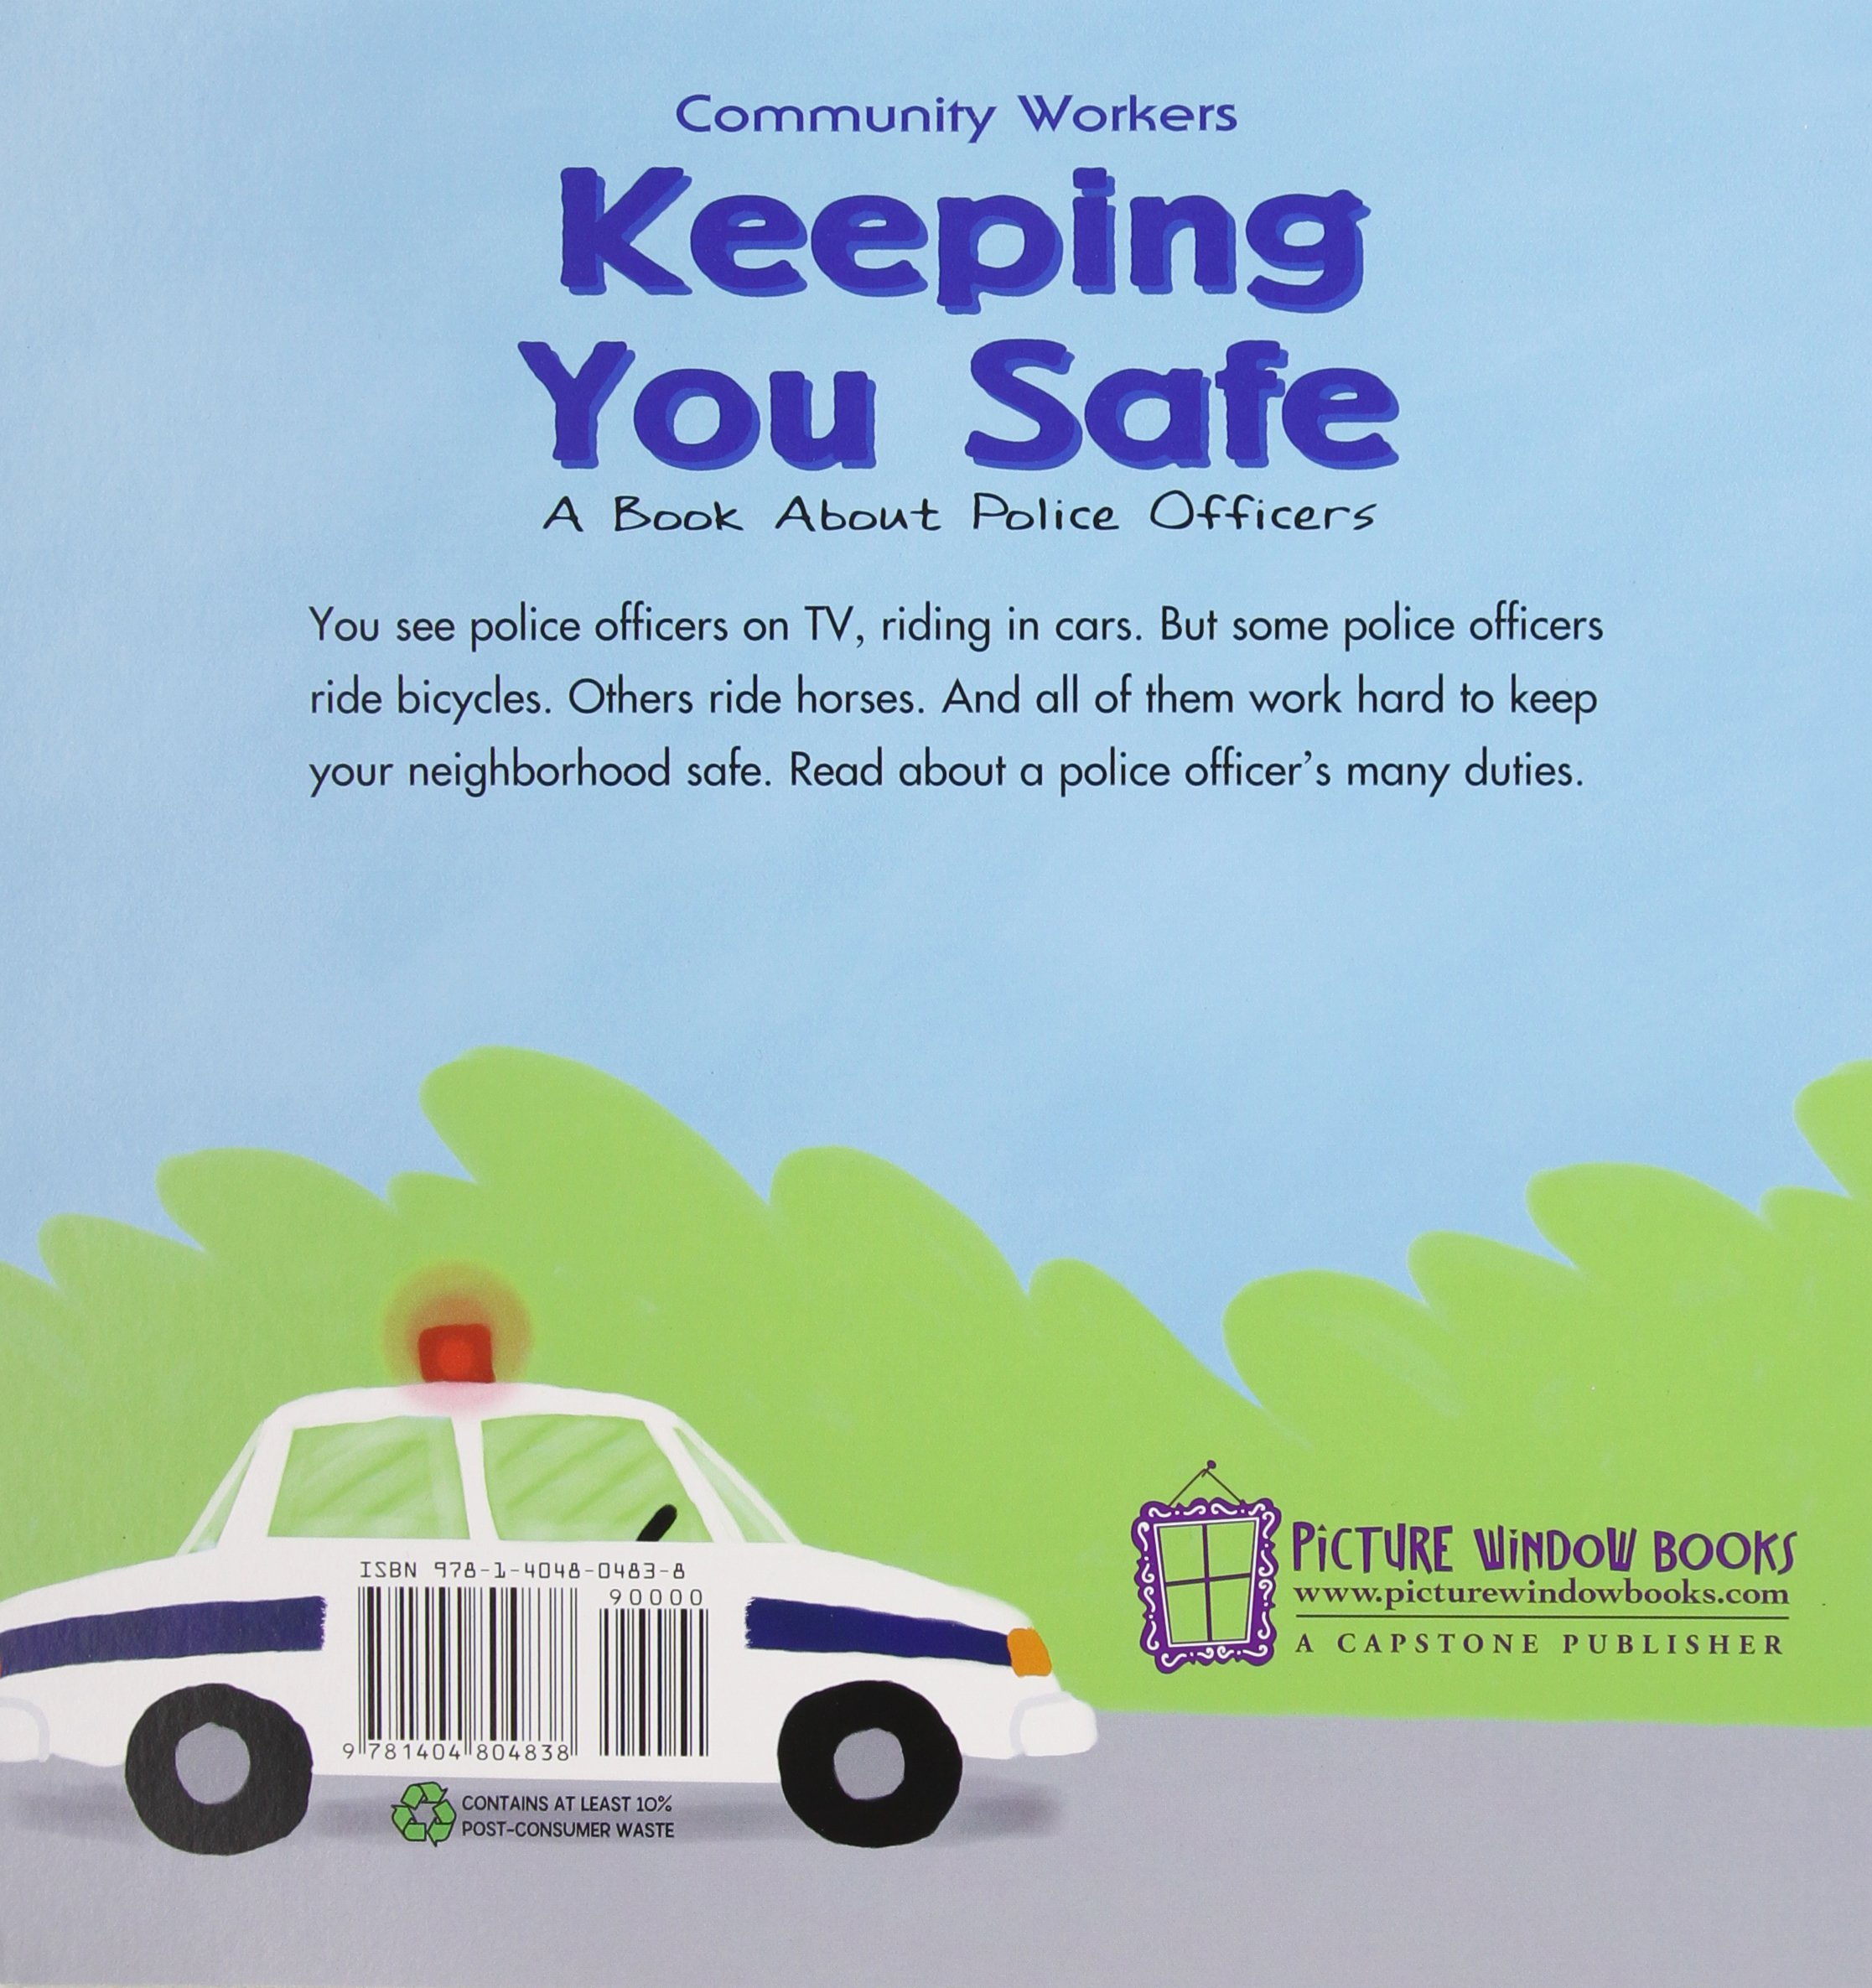 Keeping You Safe: A Book About Police Officers (Community